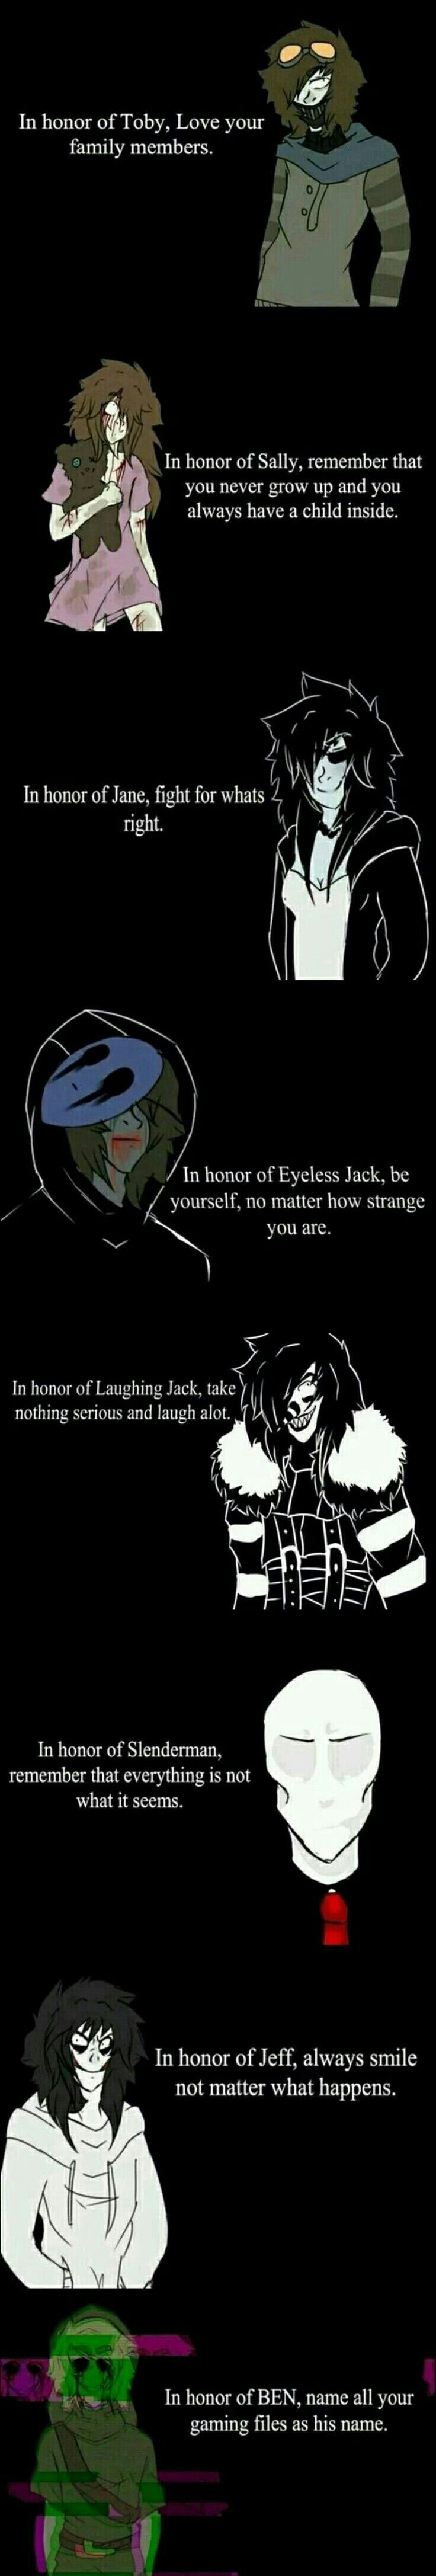 Ticci Toby, Sally, Jane the Killer, Eyeless Jack, Laughing Jack, Slenderman, Jeff the Killer, Ben Drowned, sad, text; Creepypasta